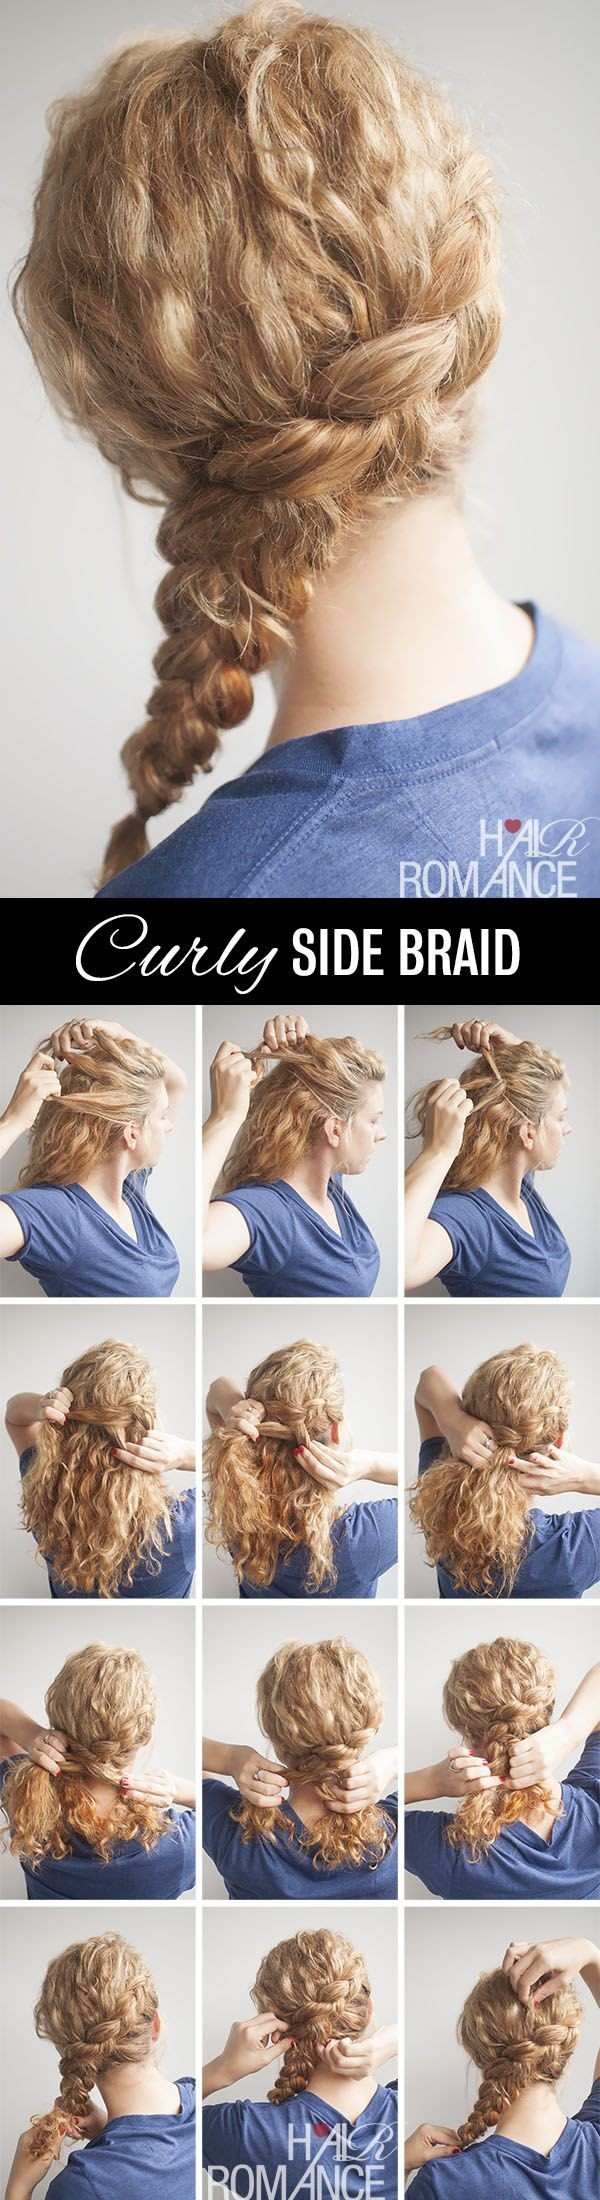 Curly Side Braid Frisur-Tutorial für langes Haar